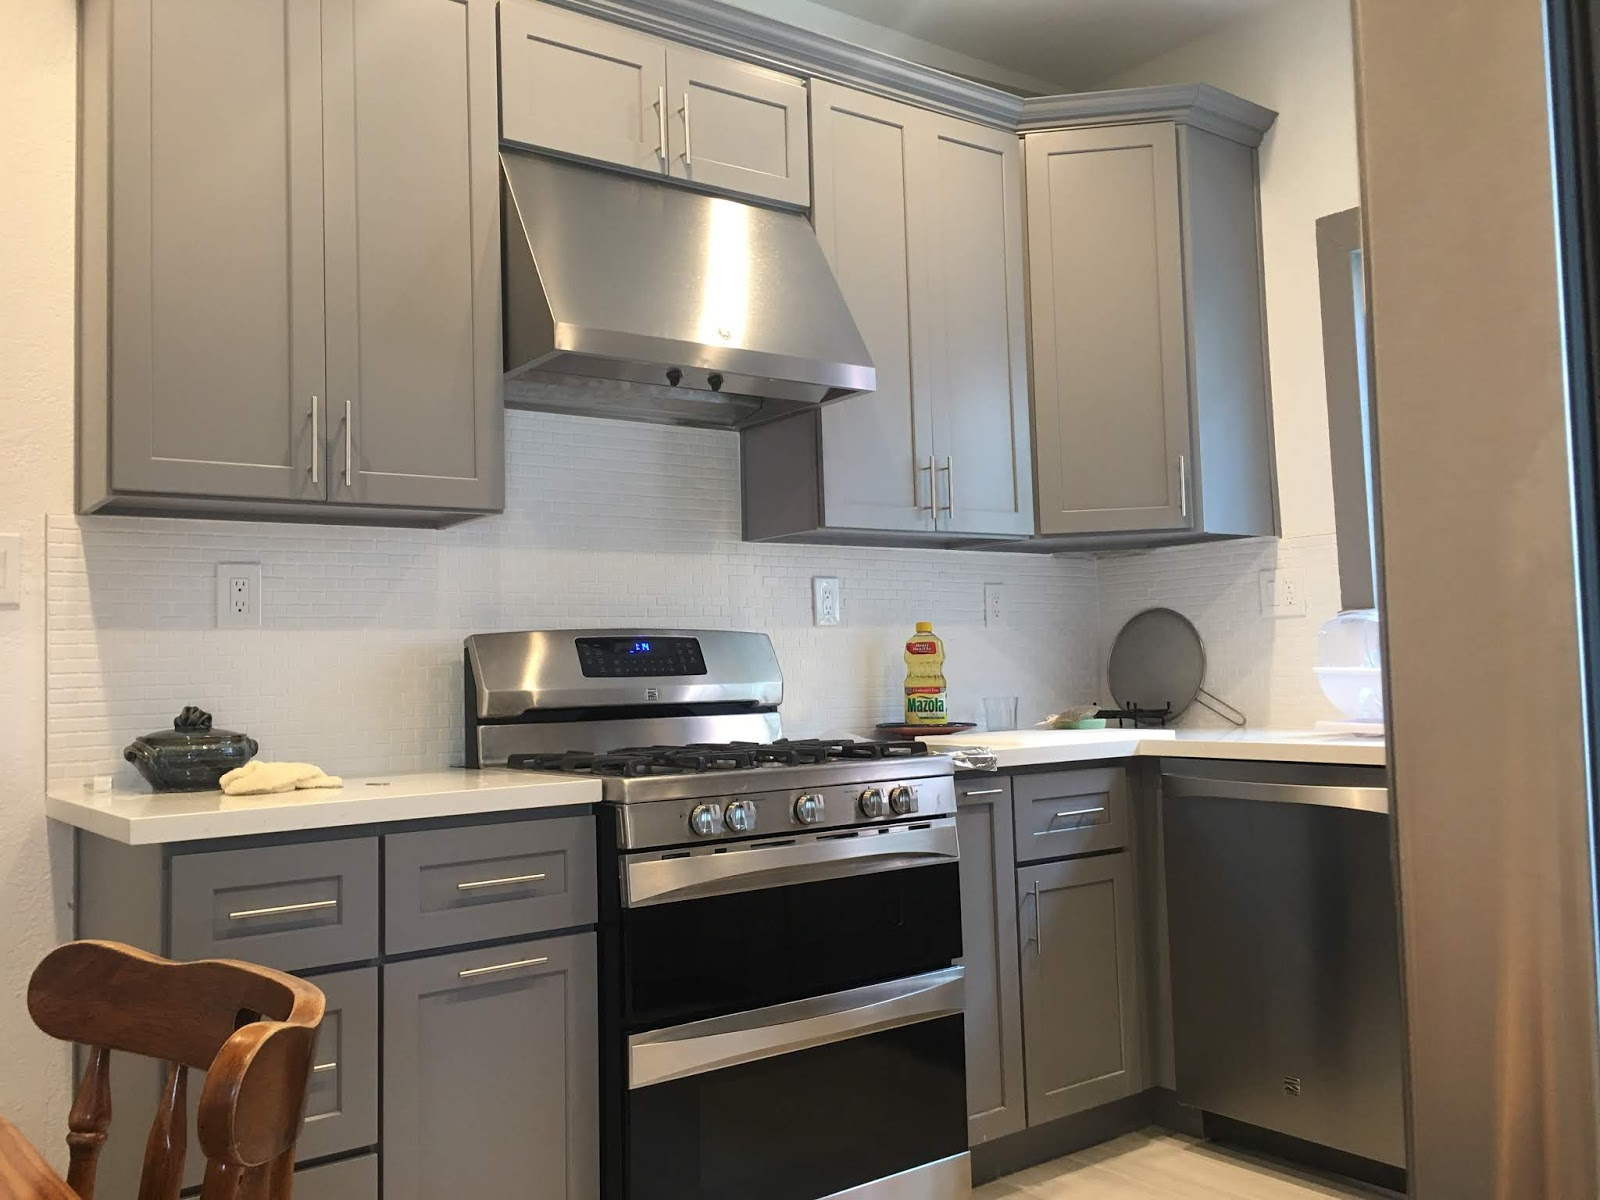 Small Kitchen Remodel With Grey Cabinets And Quartz Countertop